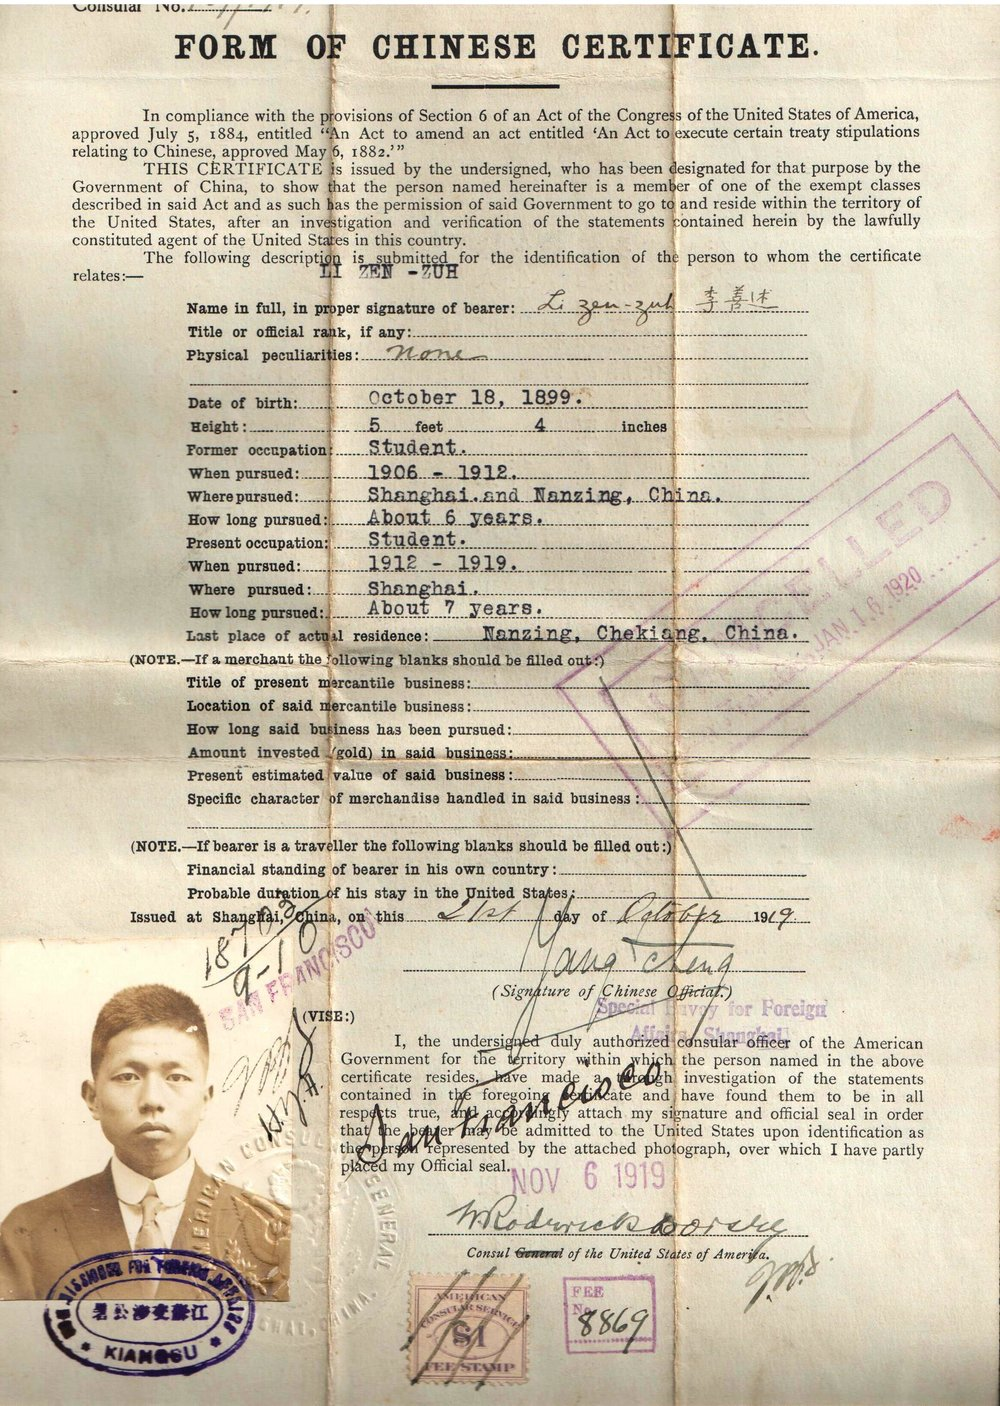 "Zen Zuh Li's Chinese Certificate, Oct. 21, 1919. This document was issued to my father to enable him to study at MIT. It states that he was ""a member of one of the exempt classes described in"" the Chinese Exclusion Act of 1882 (as amended in 1884)."